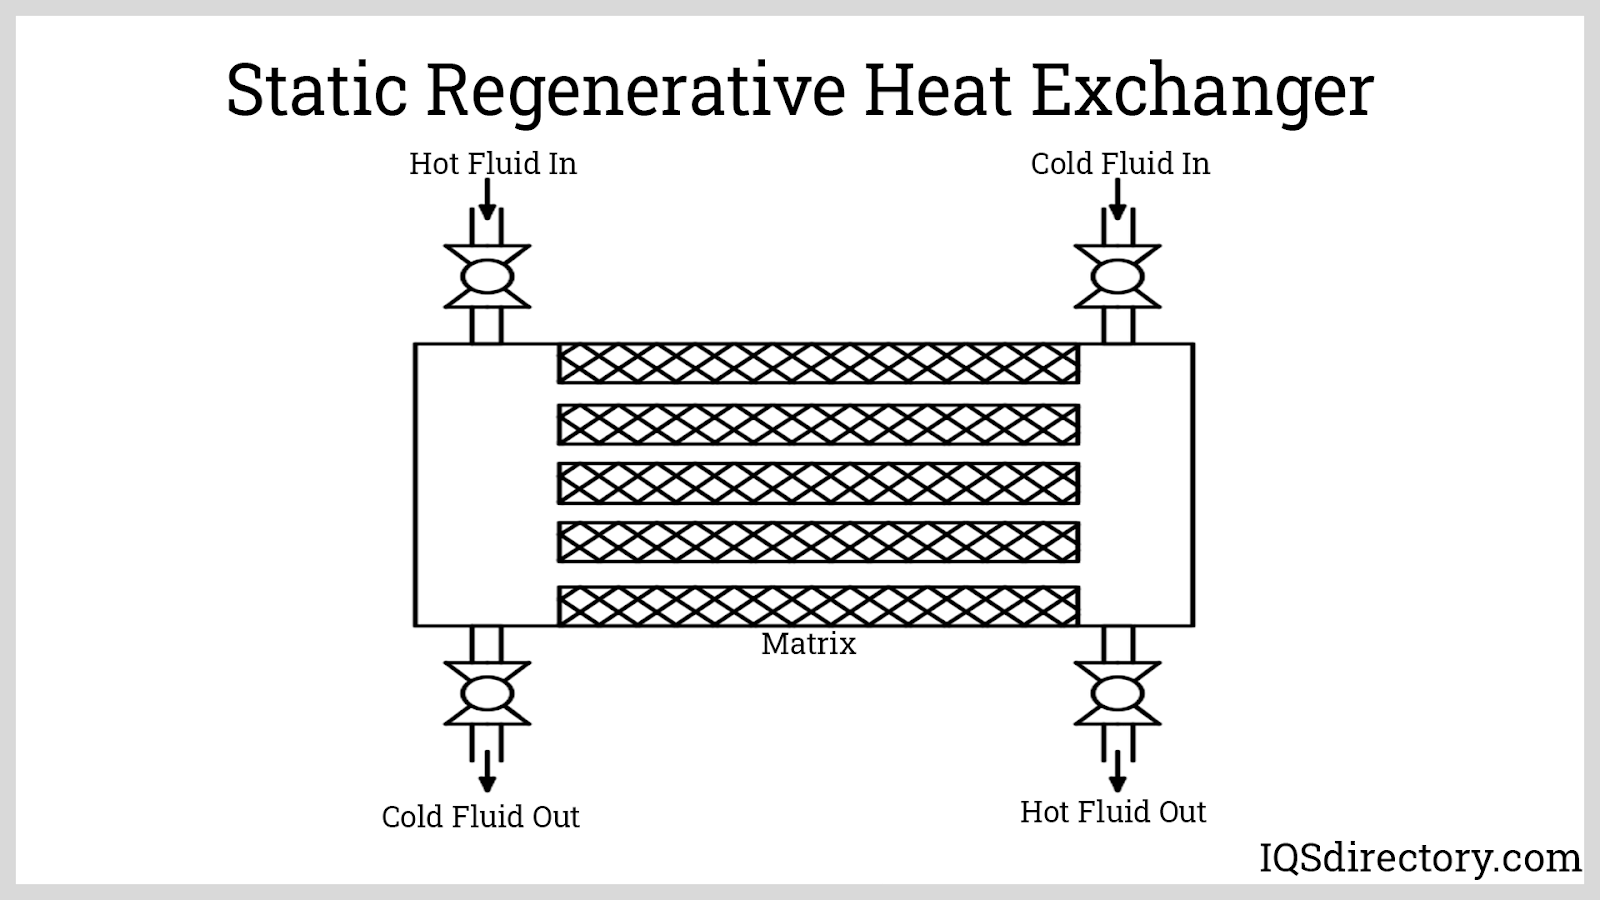 Static Regenerative Heat Exchanger